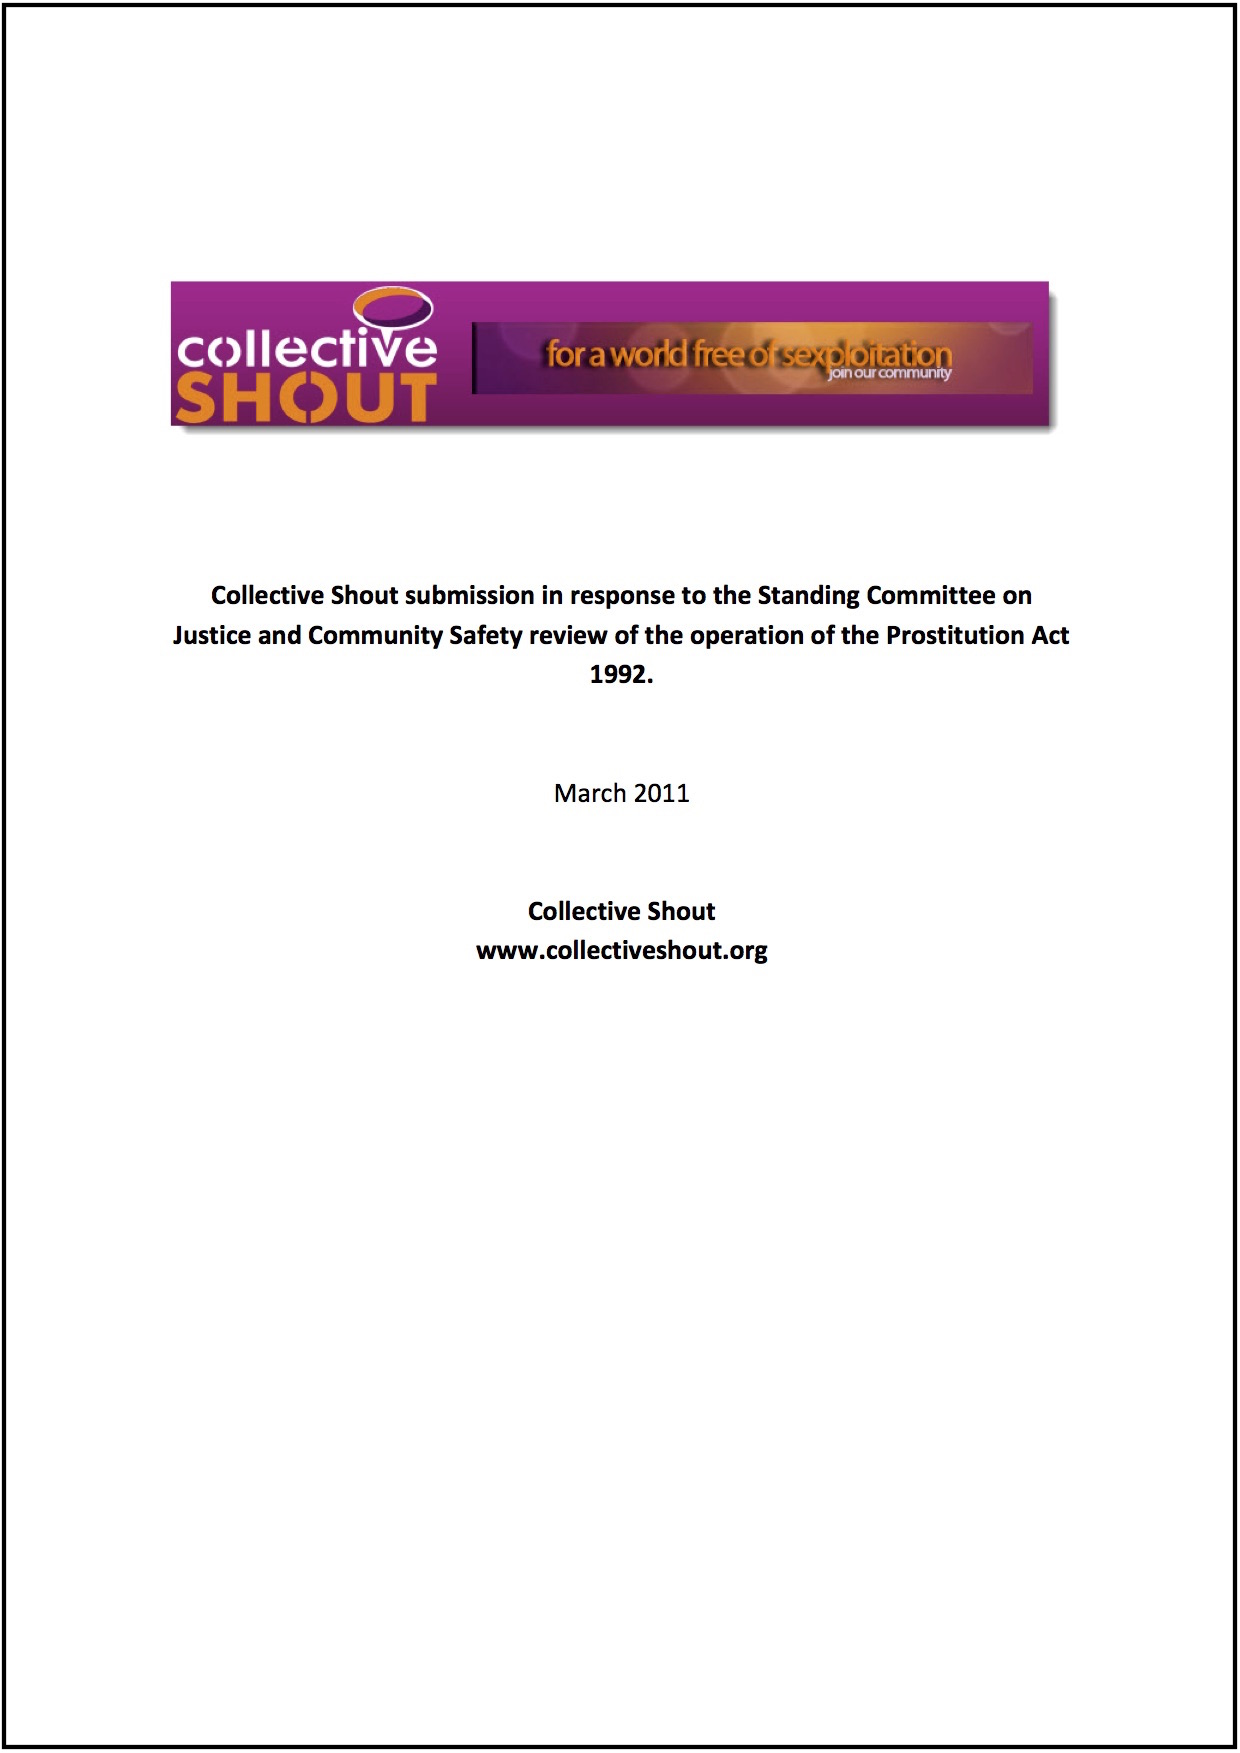 Submission to the Standing Committee on Justice and Community Safety review of the operation of the Prostitution Act 1992